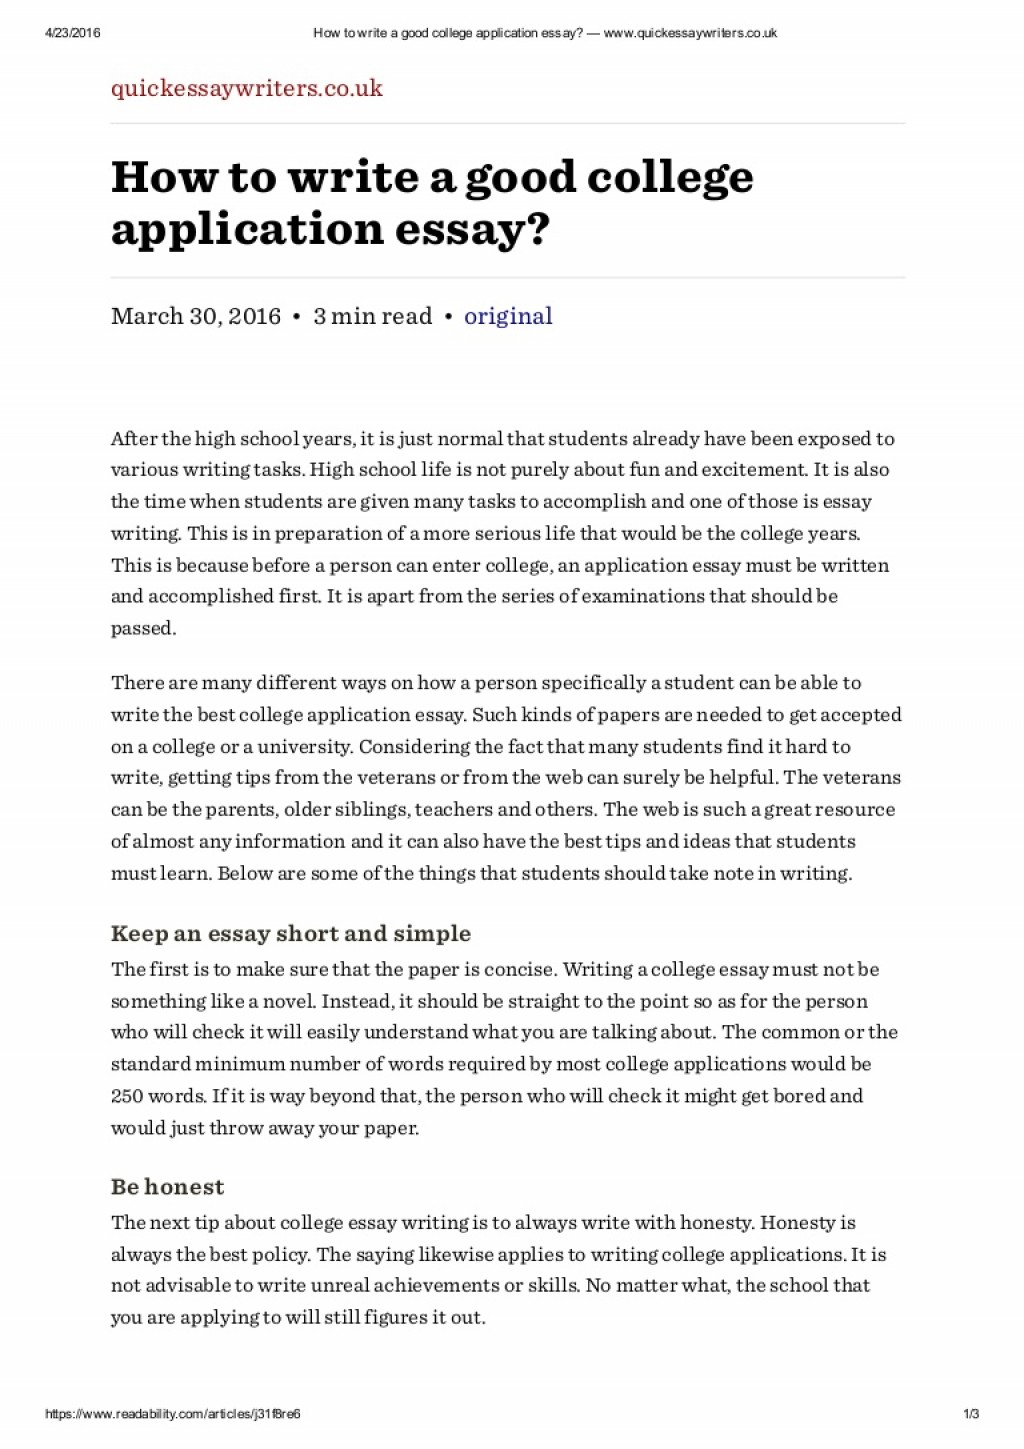 008 Essay Exampleonestyow To Write Good College Application Writing Essays Sampleowtowriteagoodcollegeapplicationessaywww Thumbn Scholarship For Your Mba Examples University Staggering Honesty Katturai In Tamil Students Hindi Large